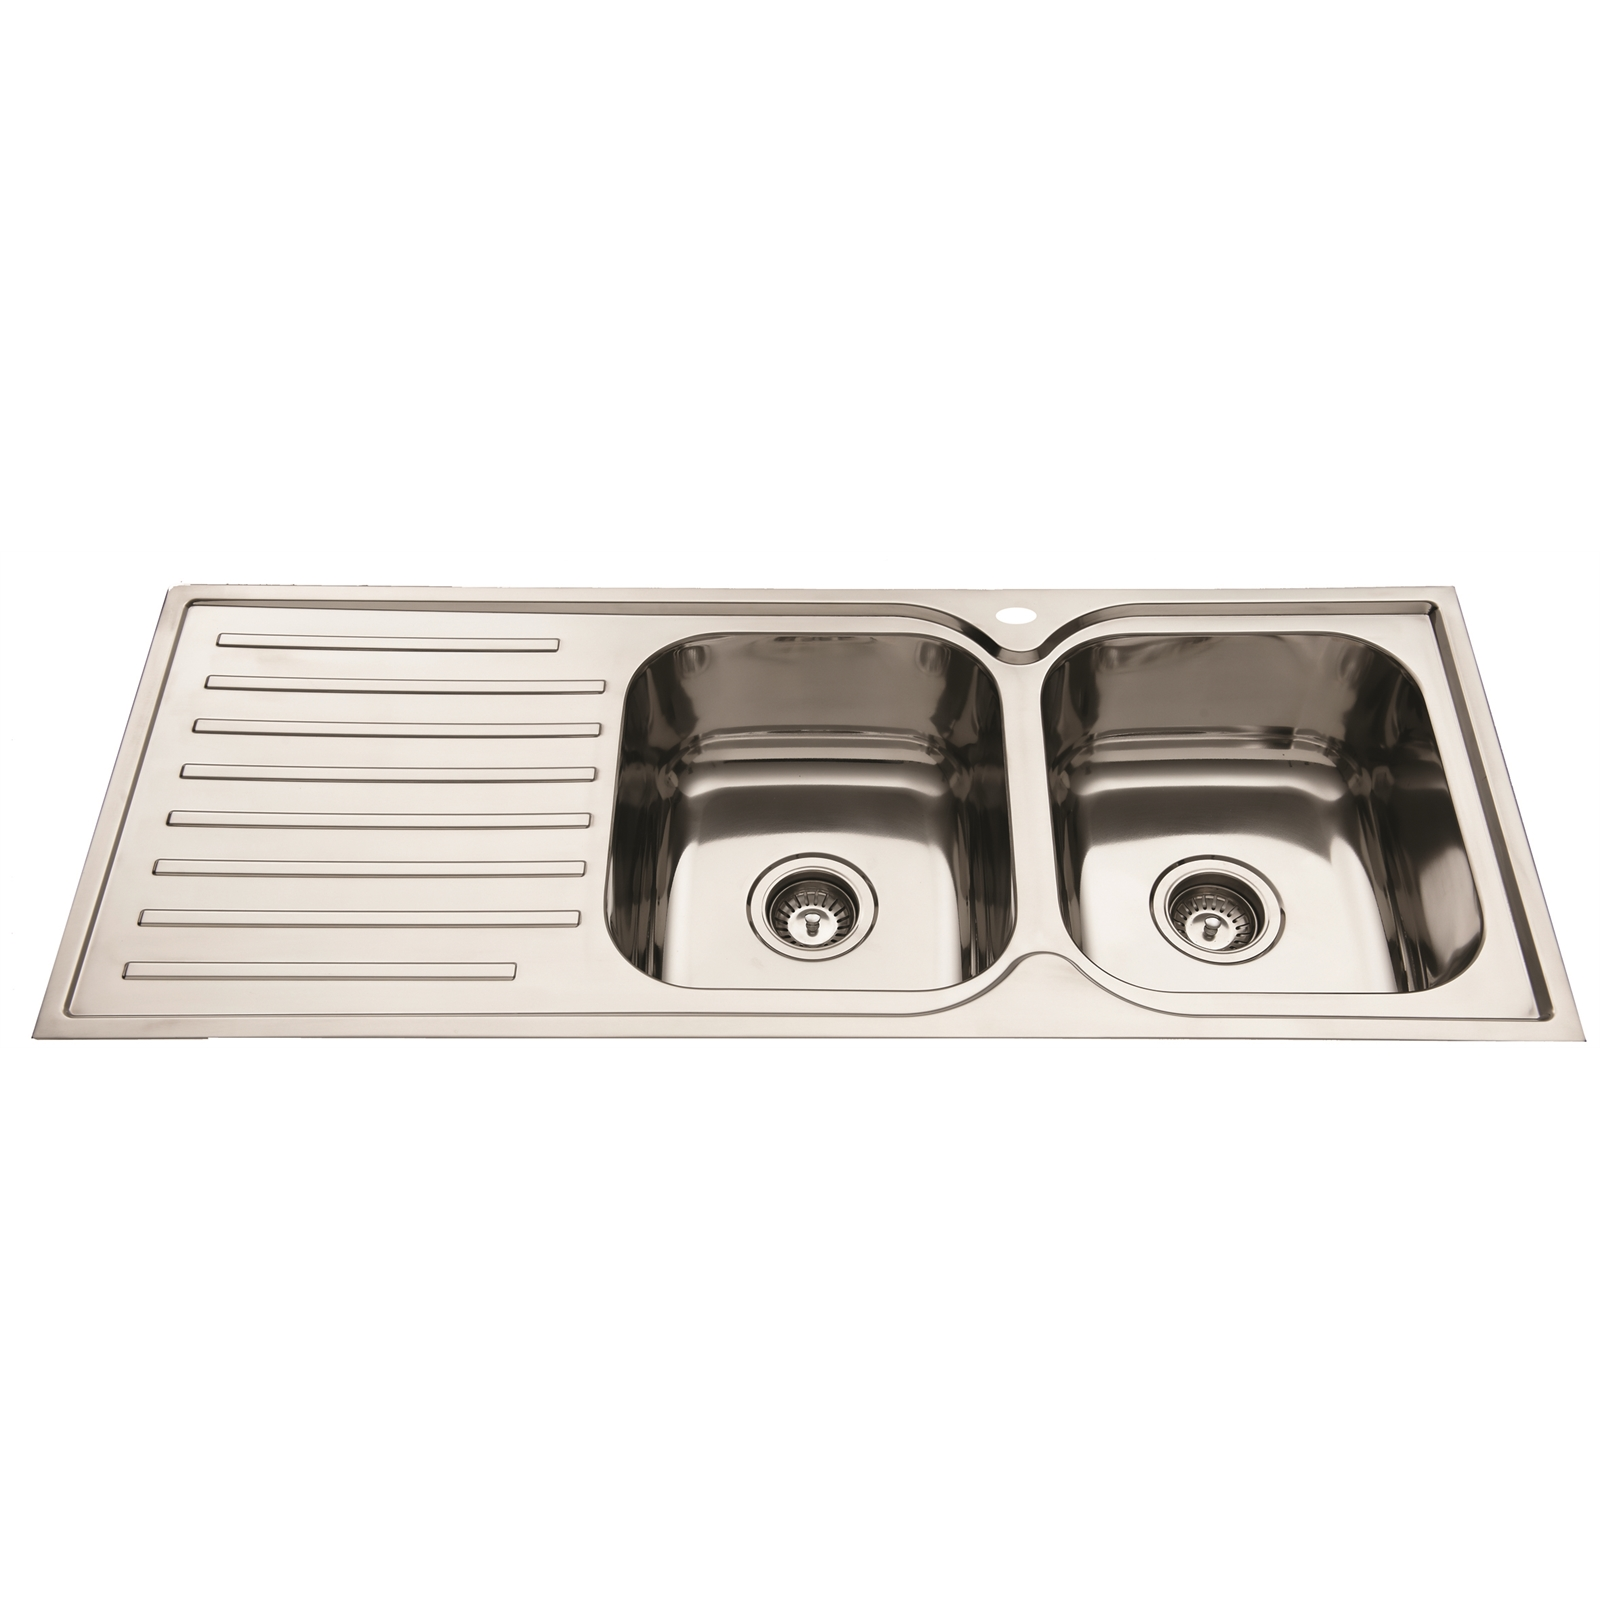 SQUARELINE 1180 - DBL BOWL S/S SINK - RHB - 1TH